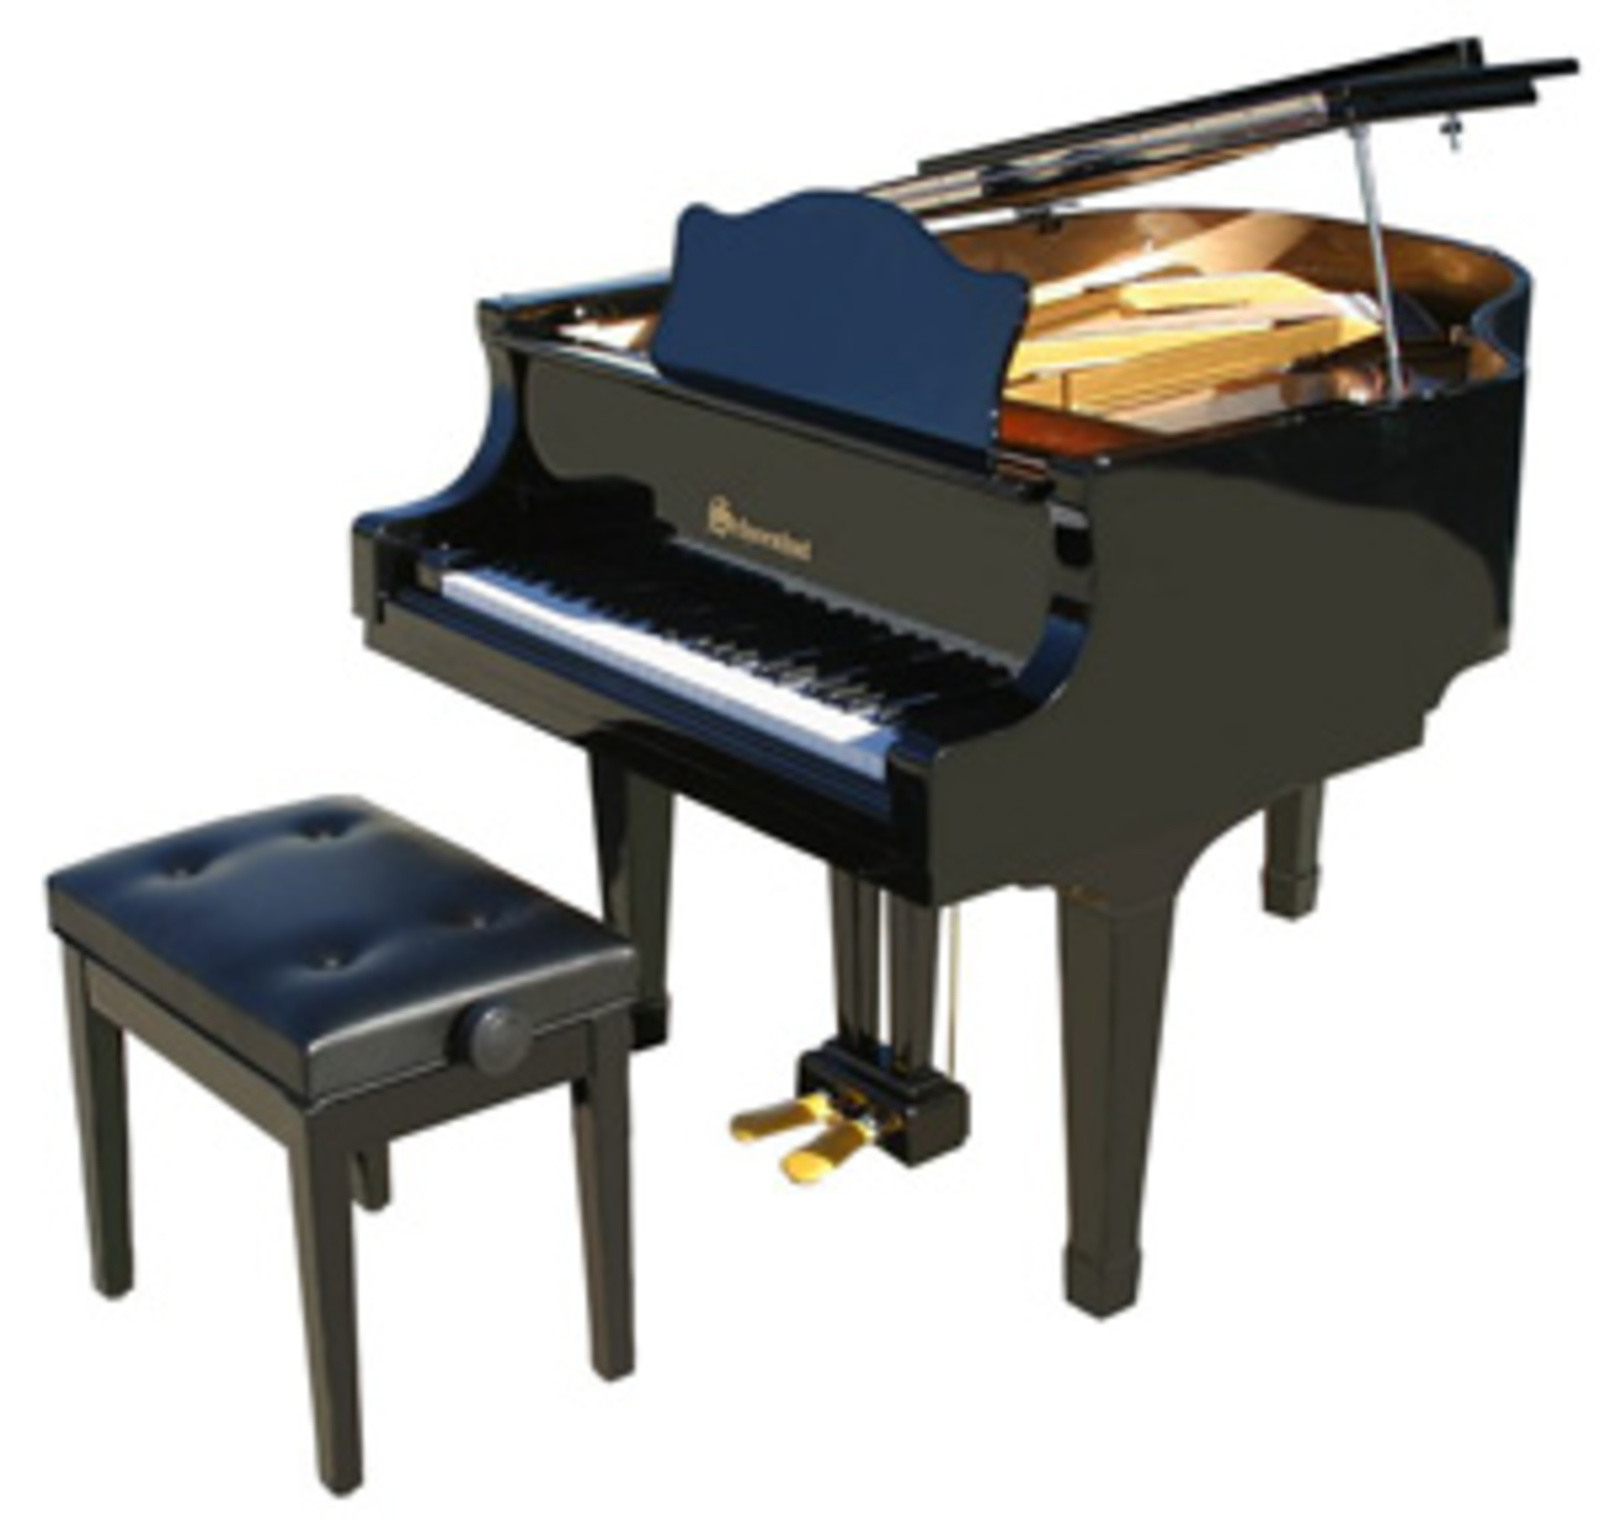 Schoenhut pro baby grand piano cool hunting for How big is a grand piano